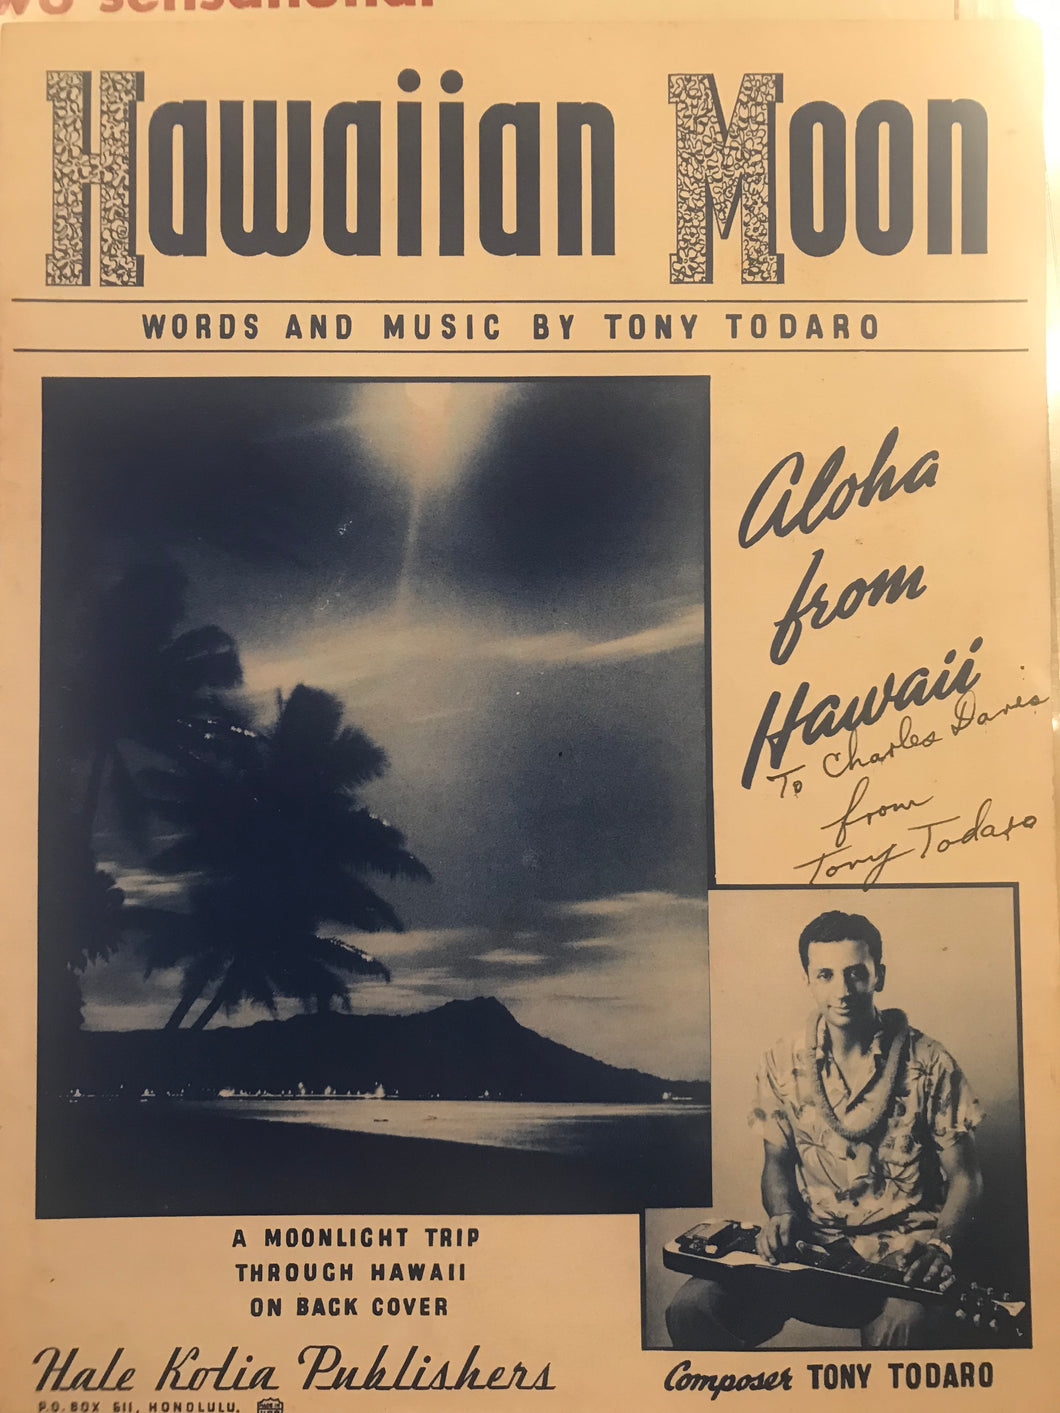 Hawaiian Sheet Music: 'Hawaiian Moon' Signed by Tony Tadaro